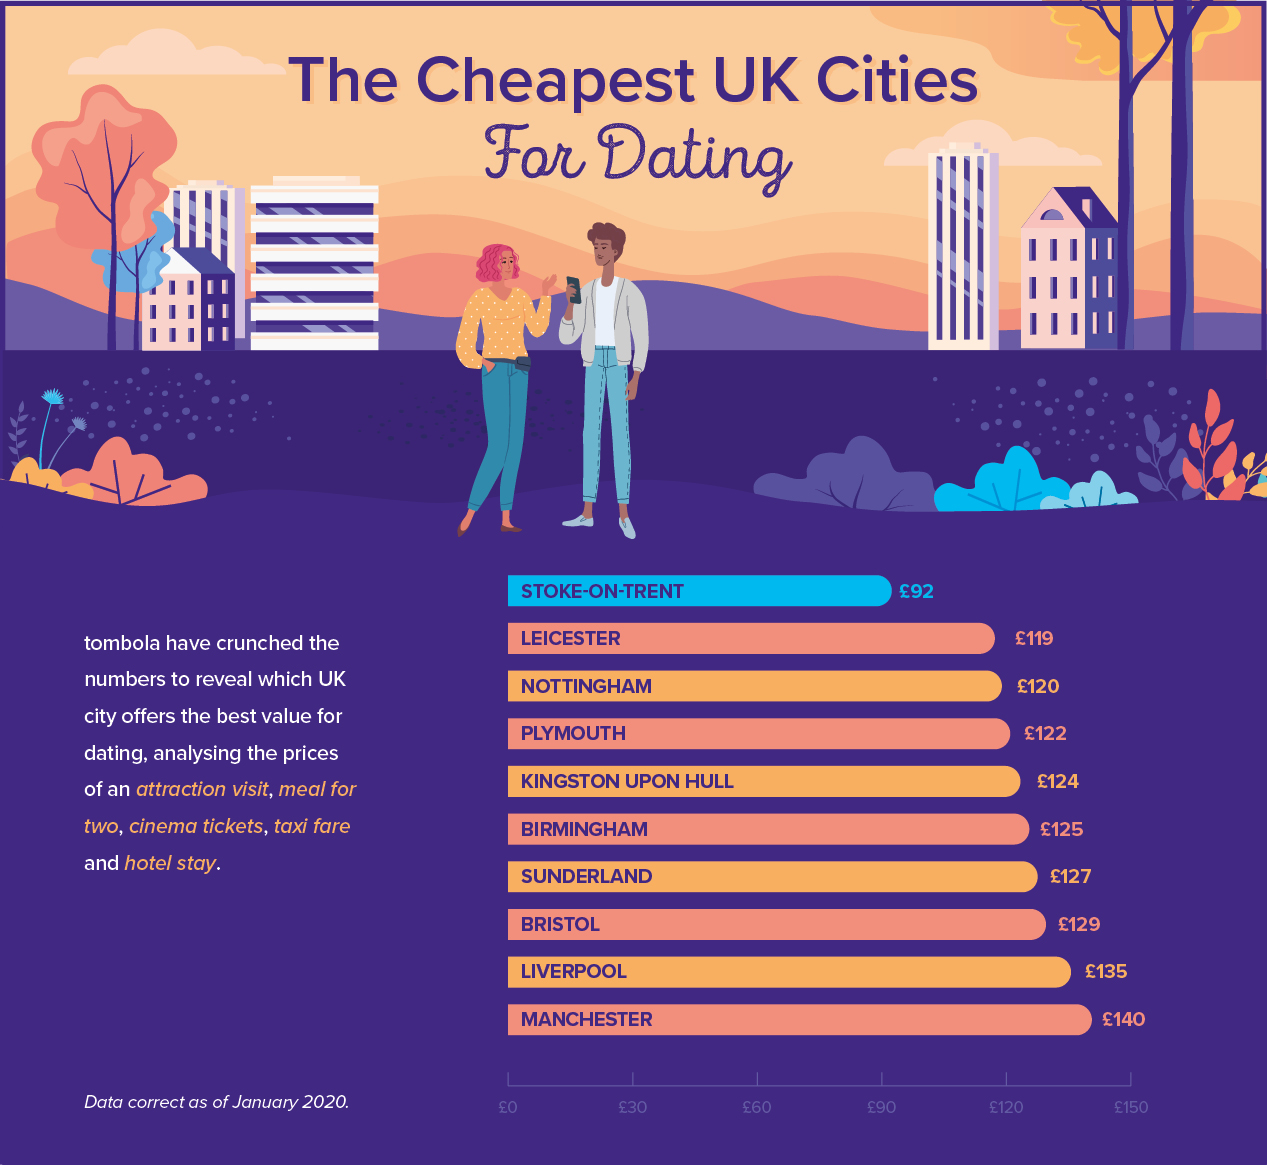 The Cheapest UK Cities for Dating